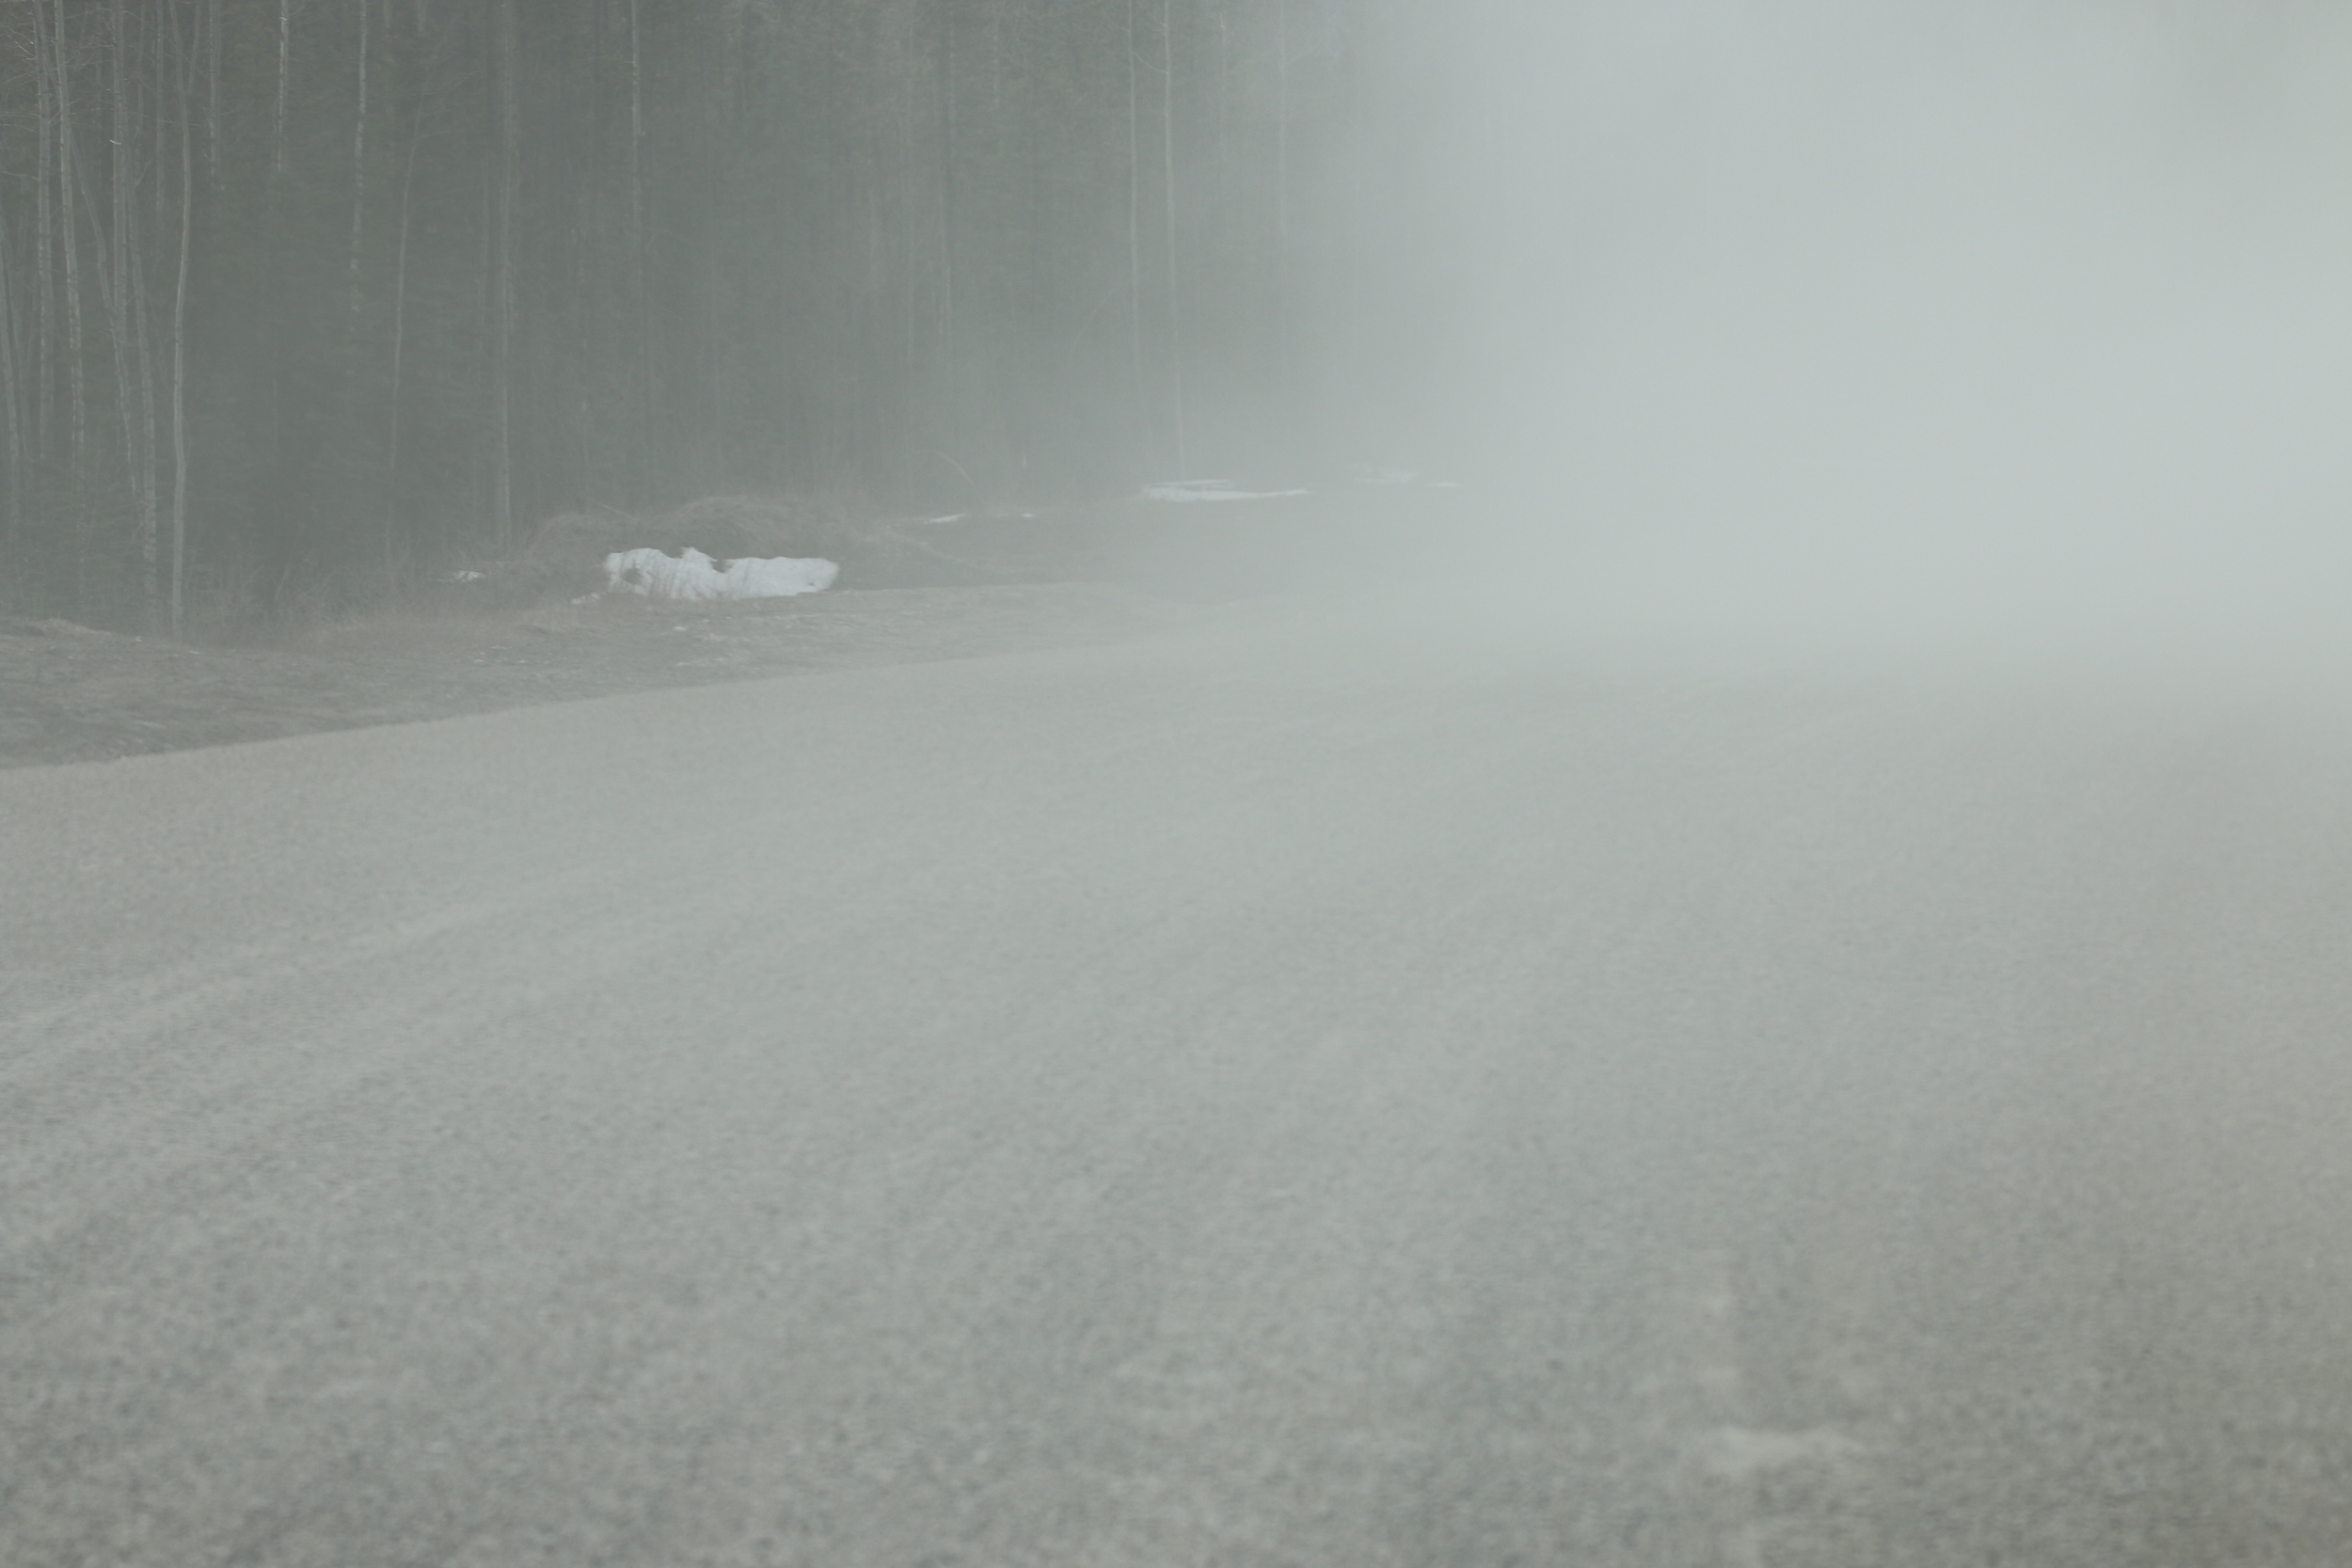 Adverse driving conditions on the Alaska Hwy